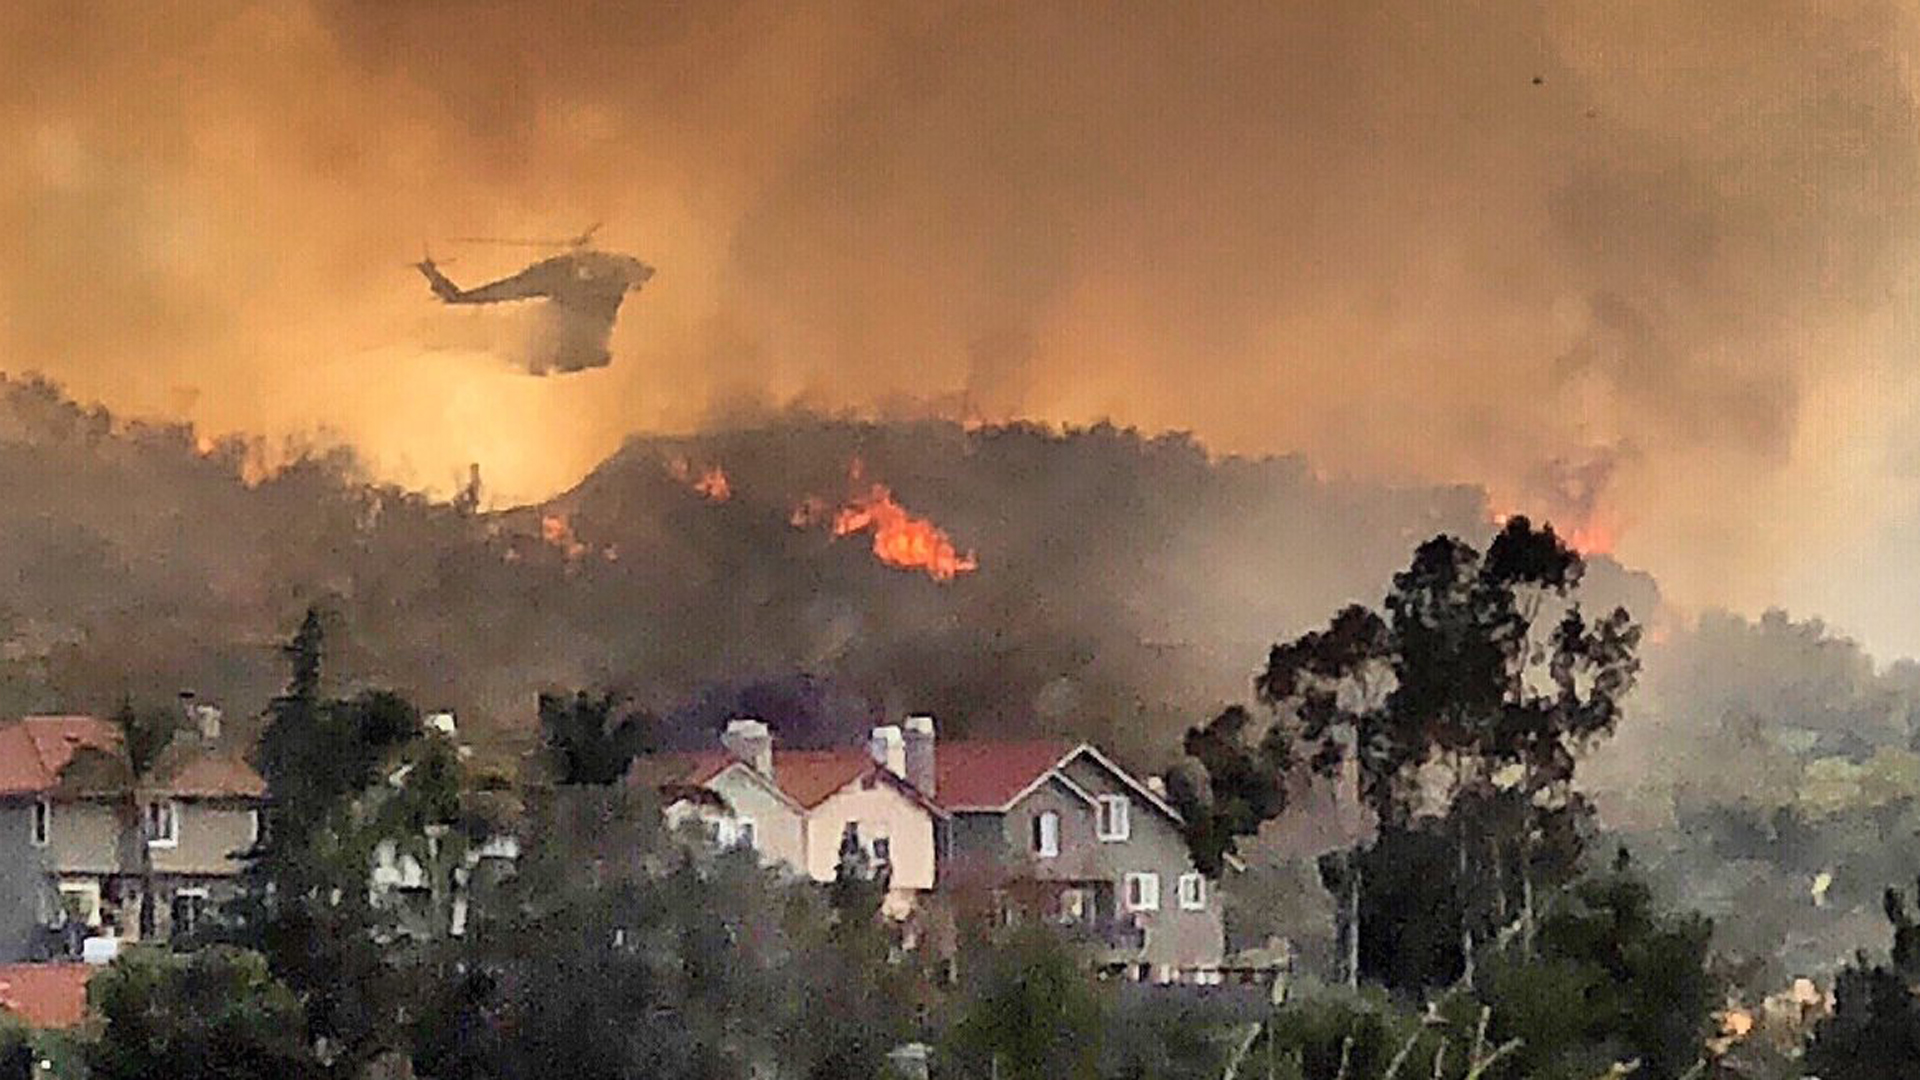 Firehawk helicopters offer air support protecting homes in Santa Clarita as the South Fire raged through the area on June 9, 2018. (Credit: Los Angeles County Fire Department Air Operations via Twitter)